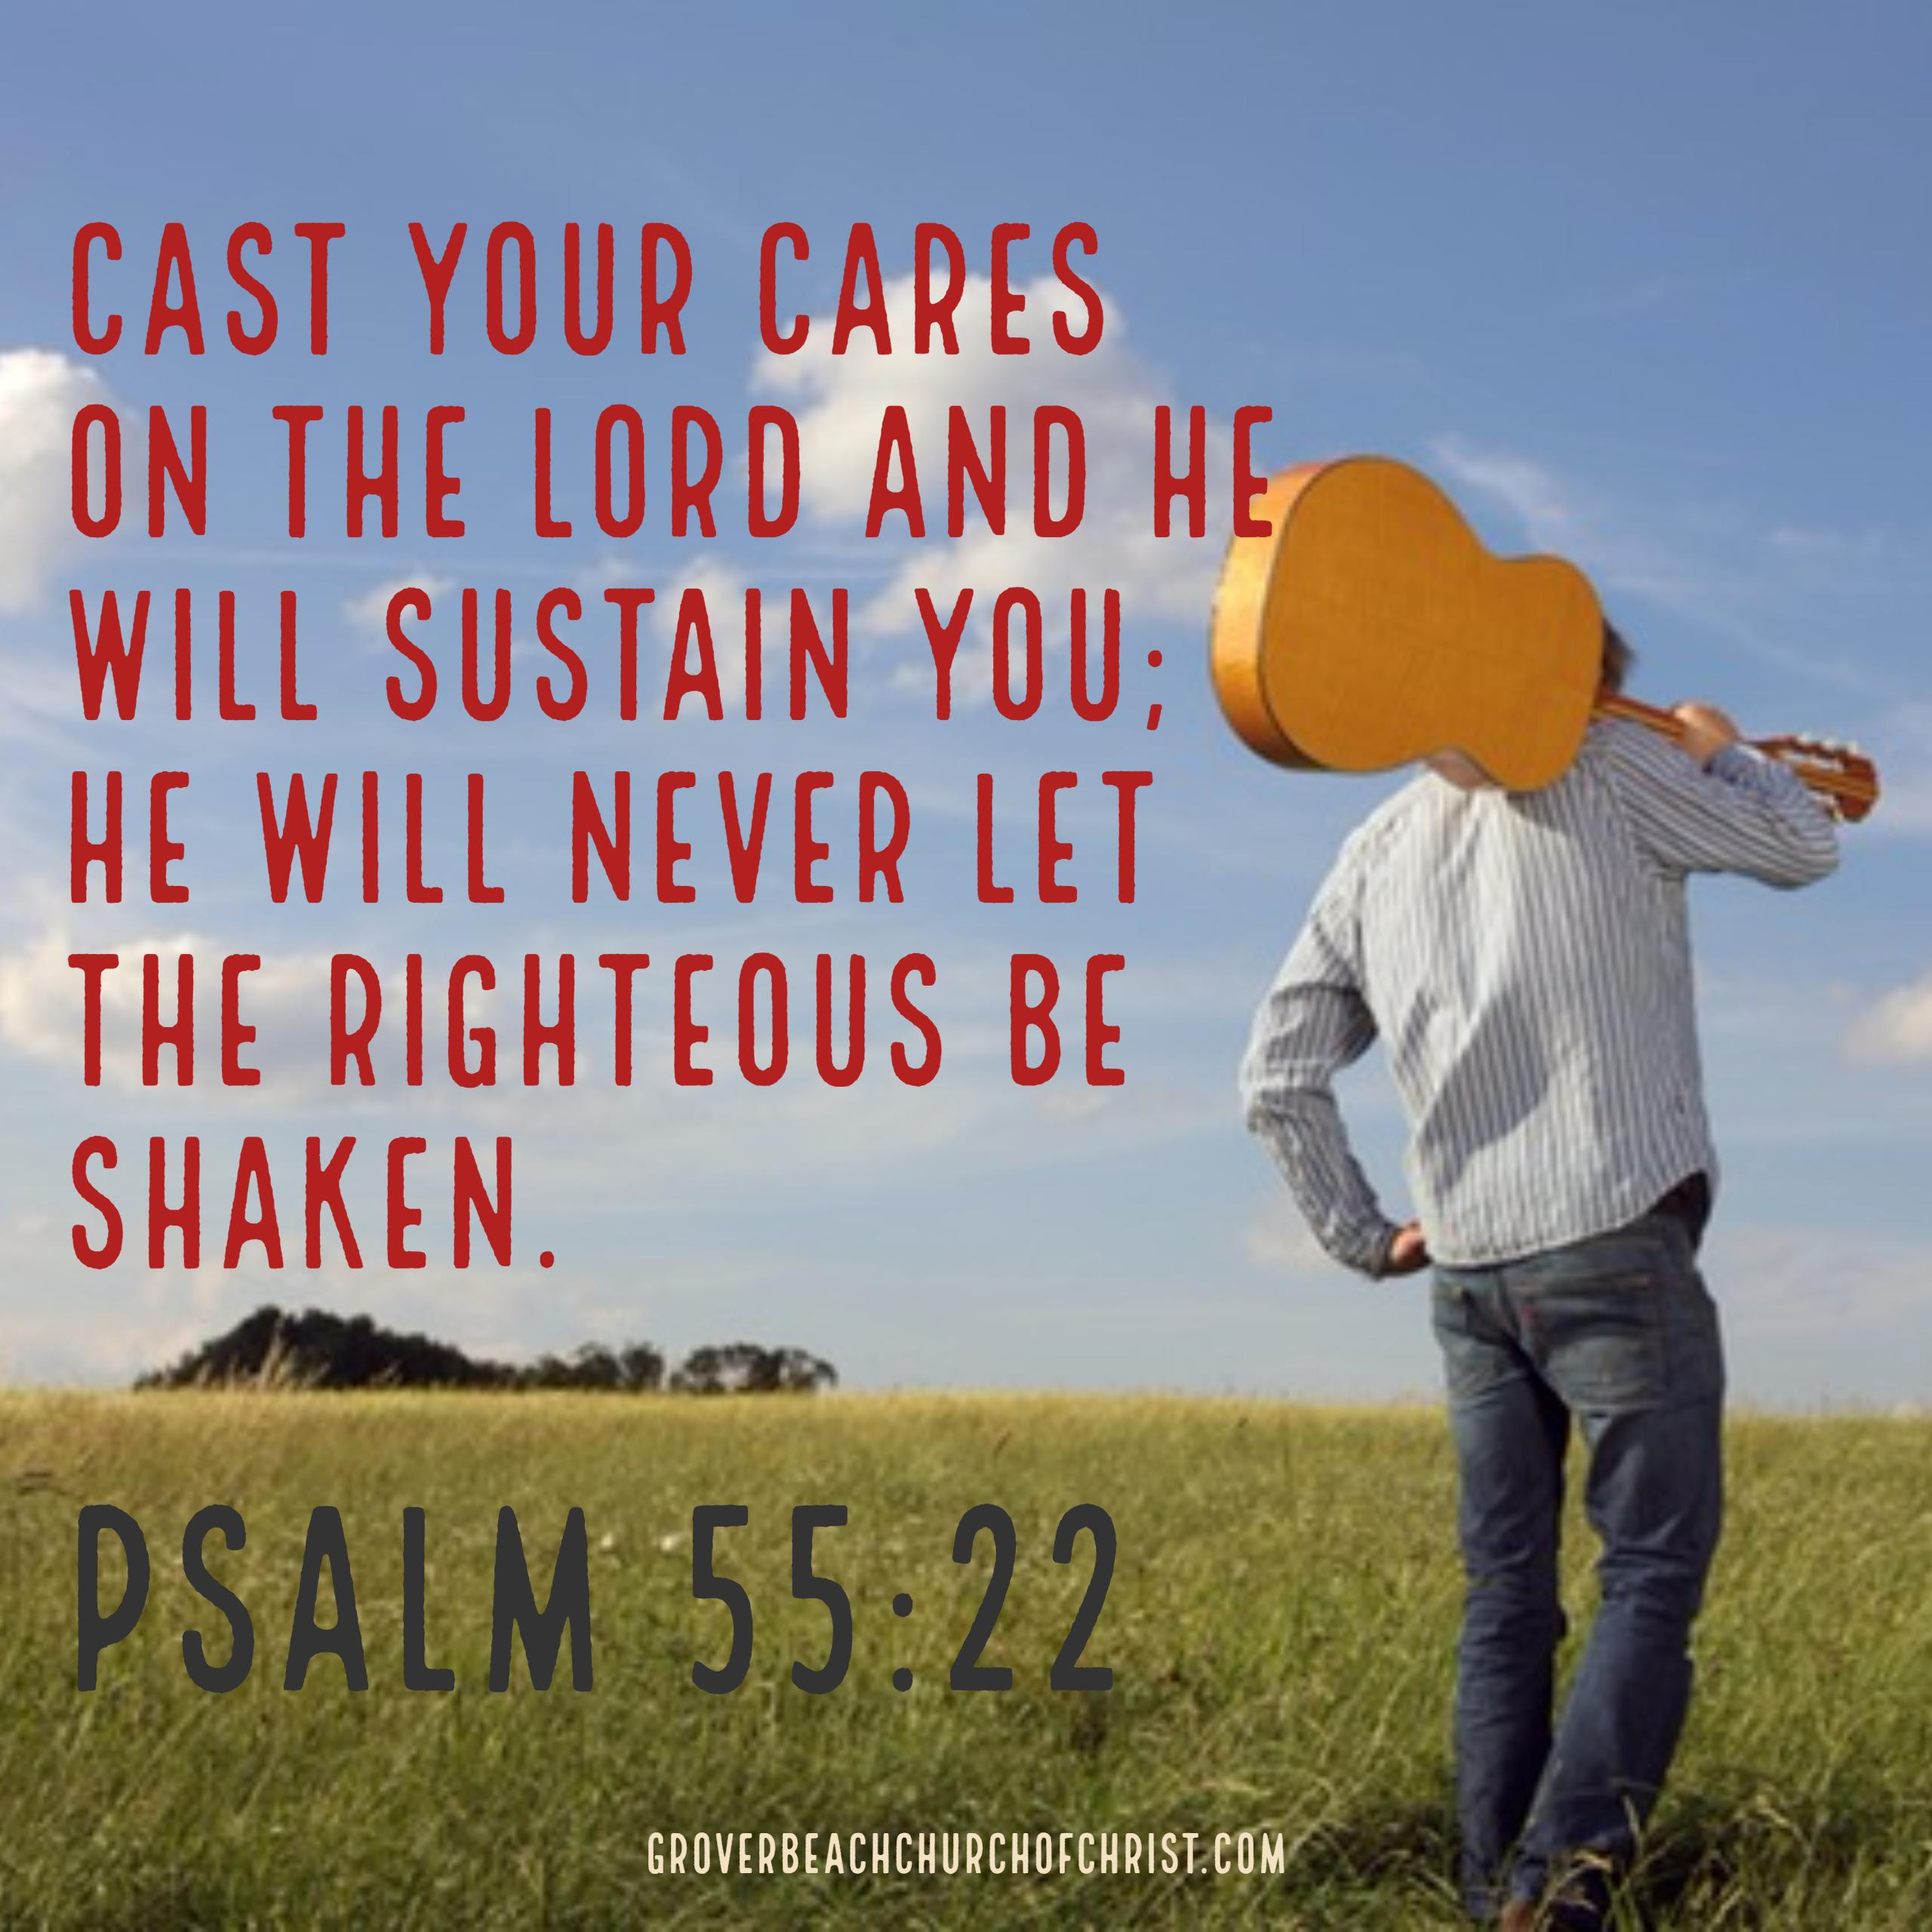 Psalm 55:22 Cast your cares